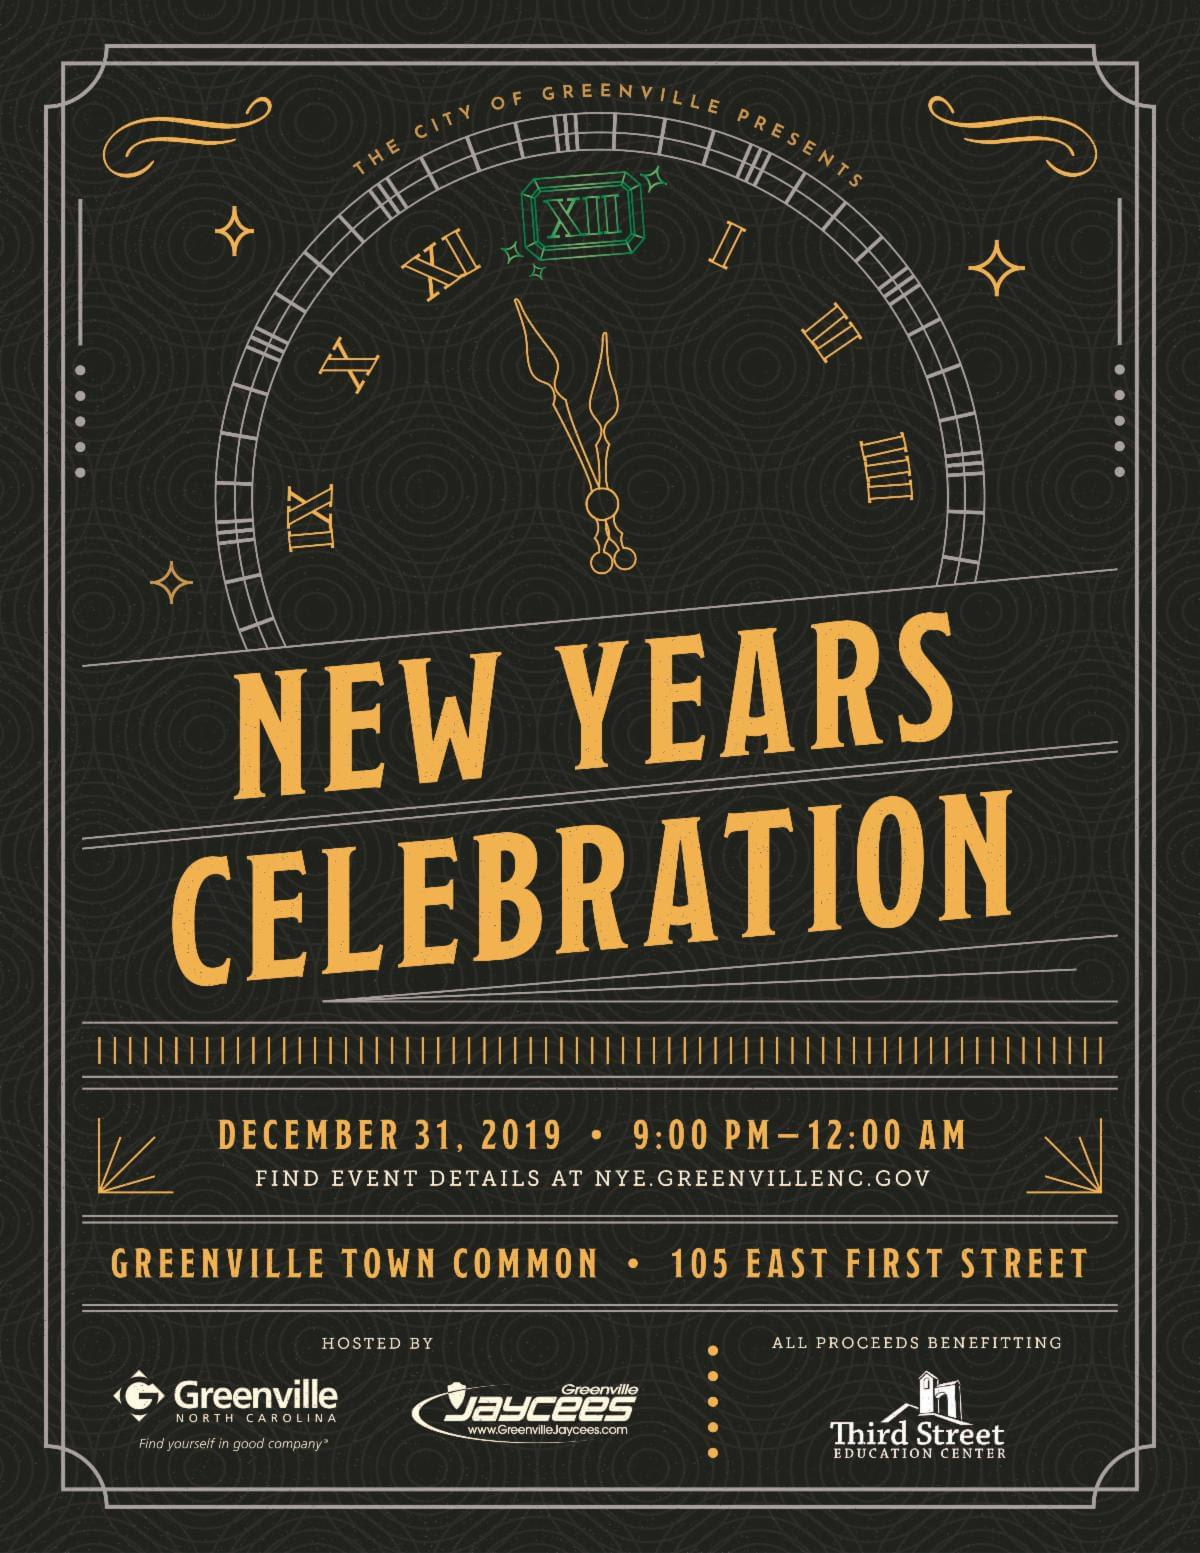 New Years EVE CELEBRATION GREENVILLE